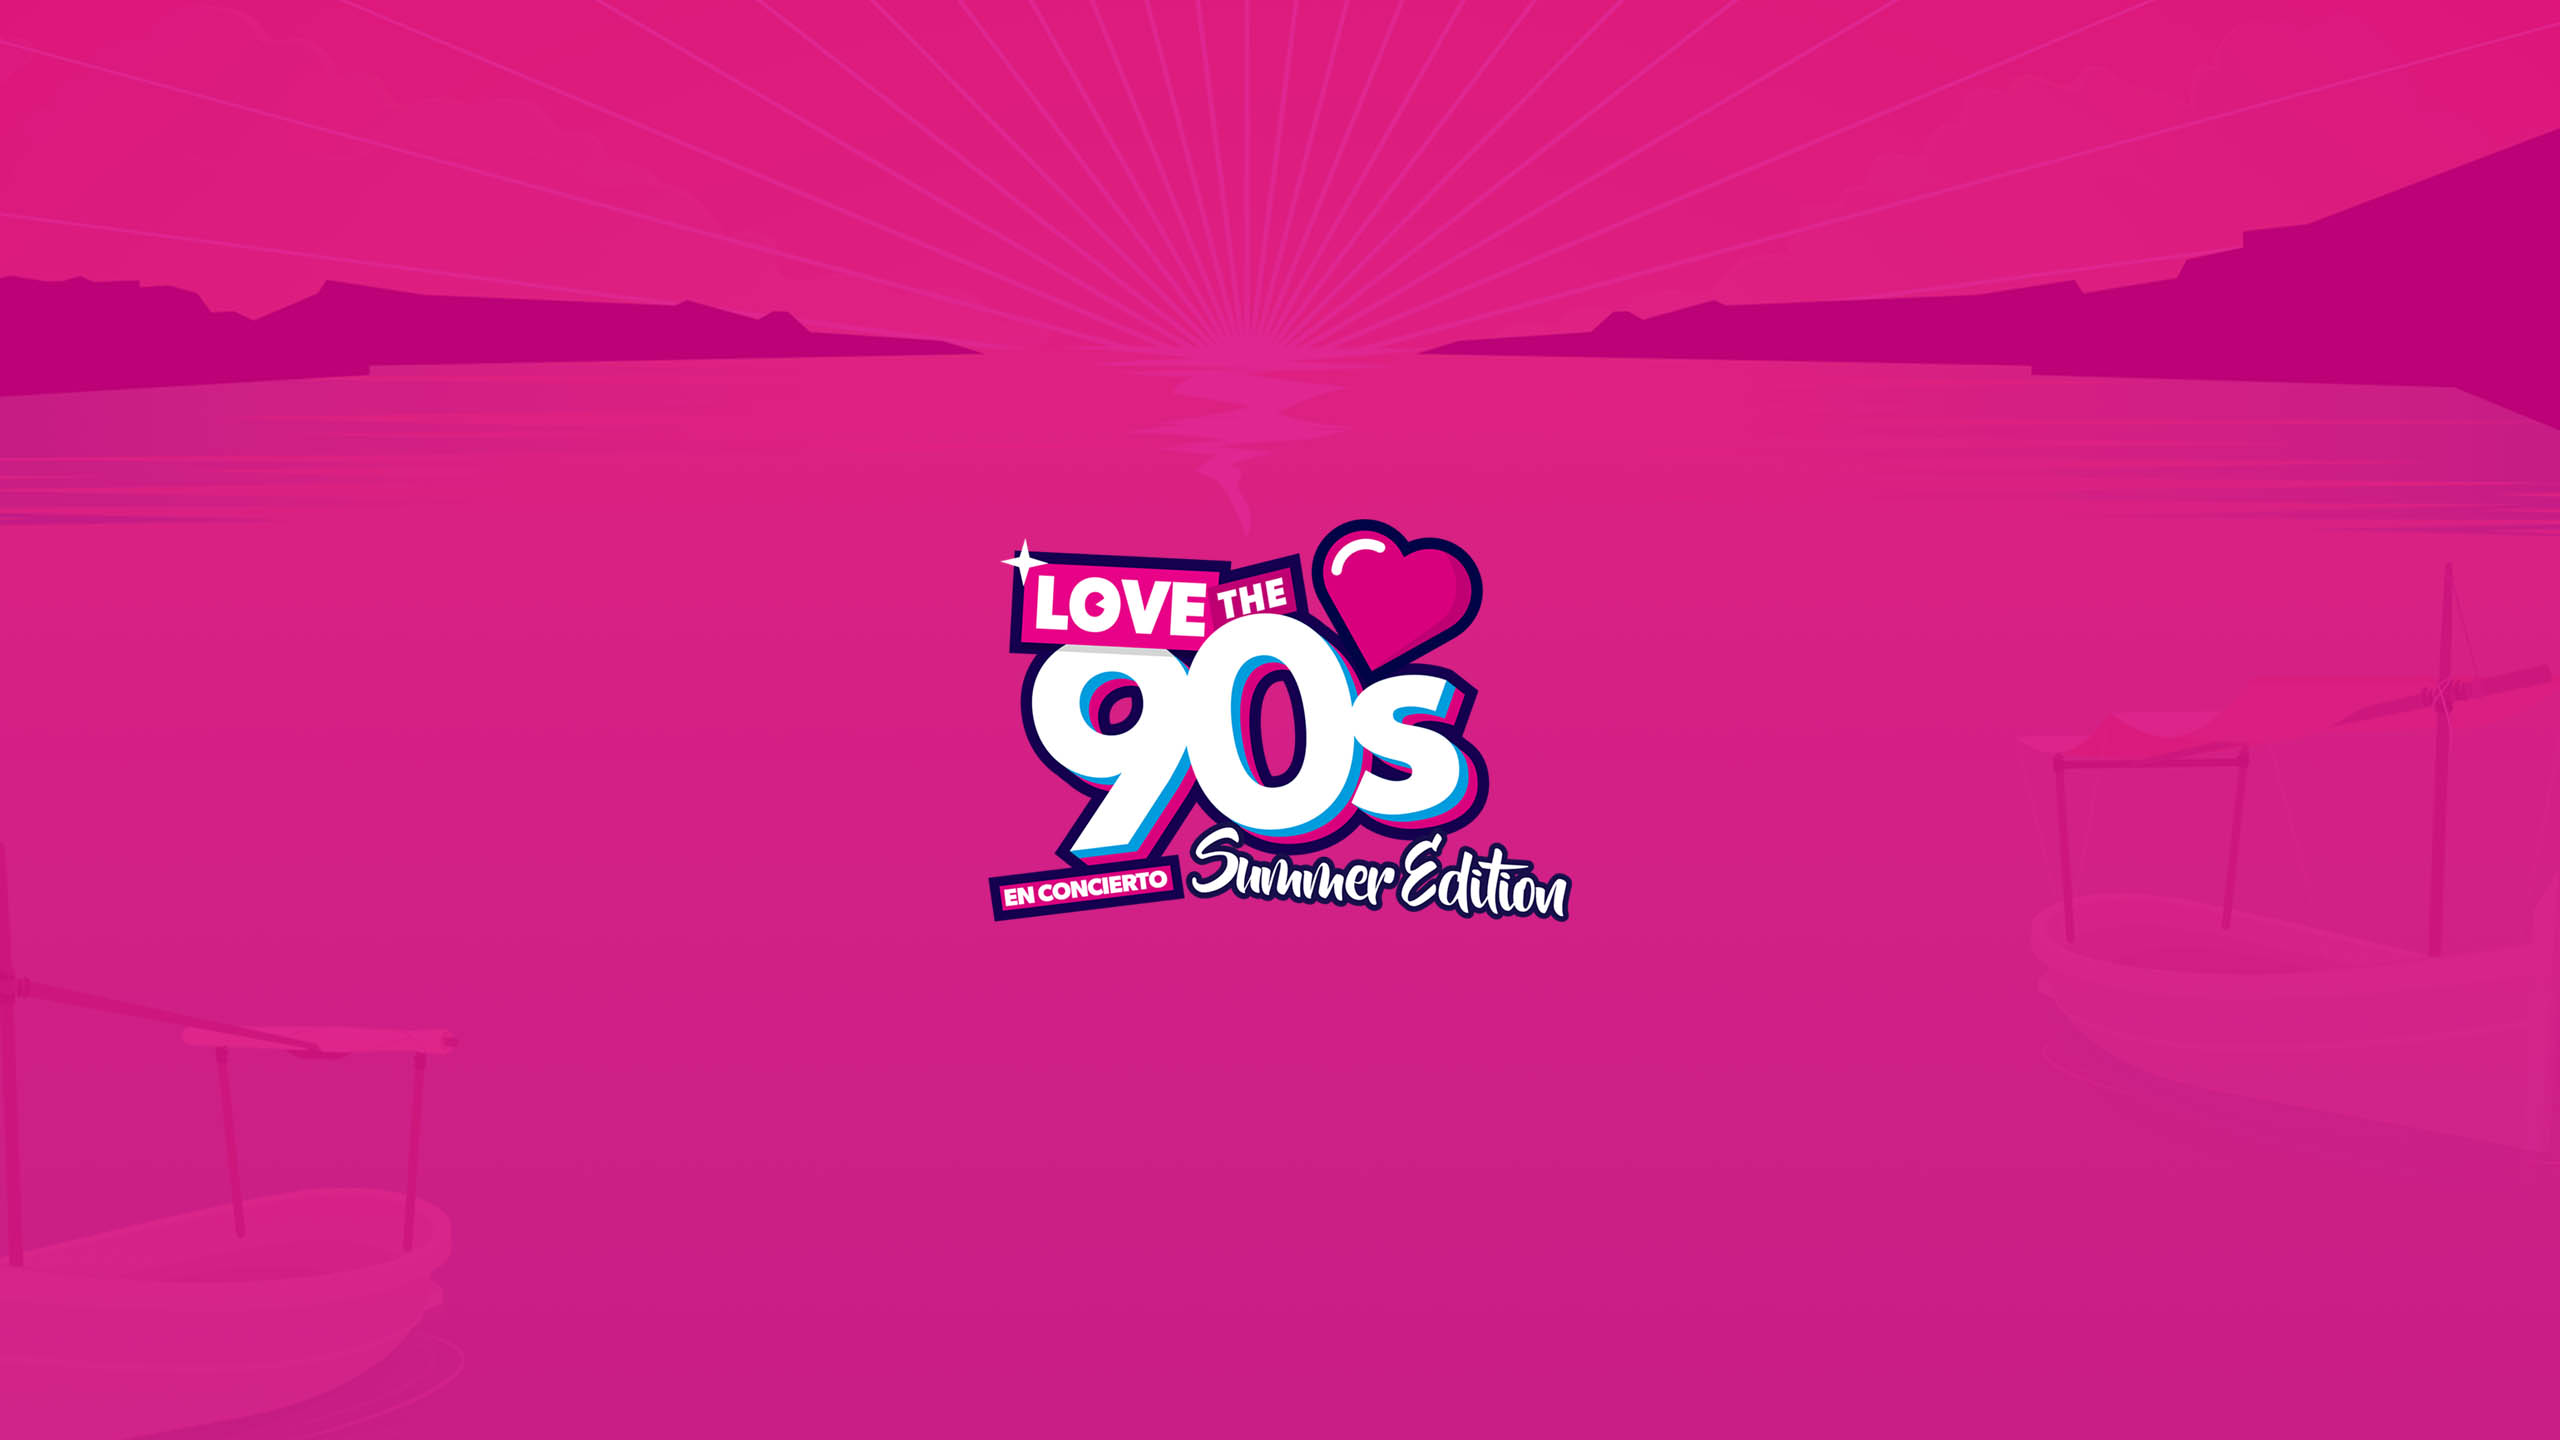 Mabull Events   Proyectos   Love the 90s: Mallorca Summer Edition (4)